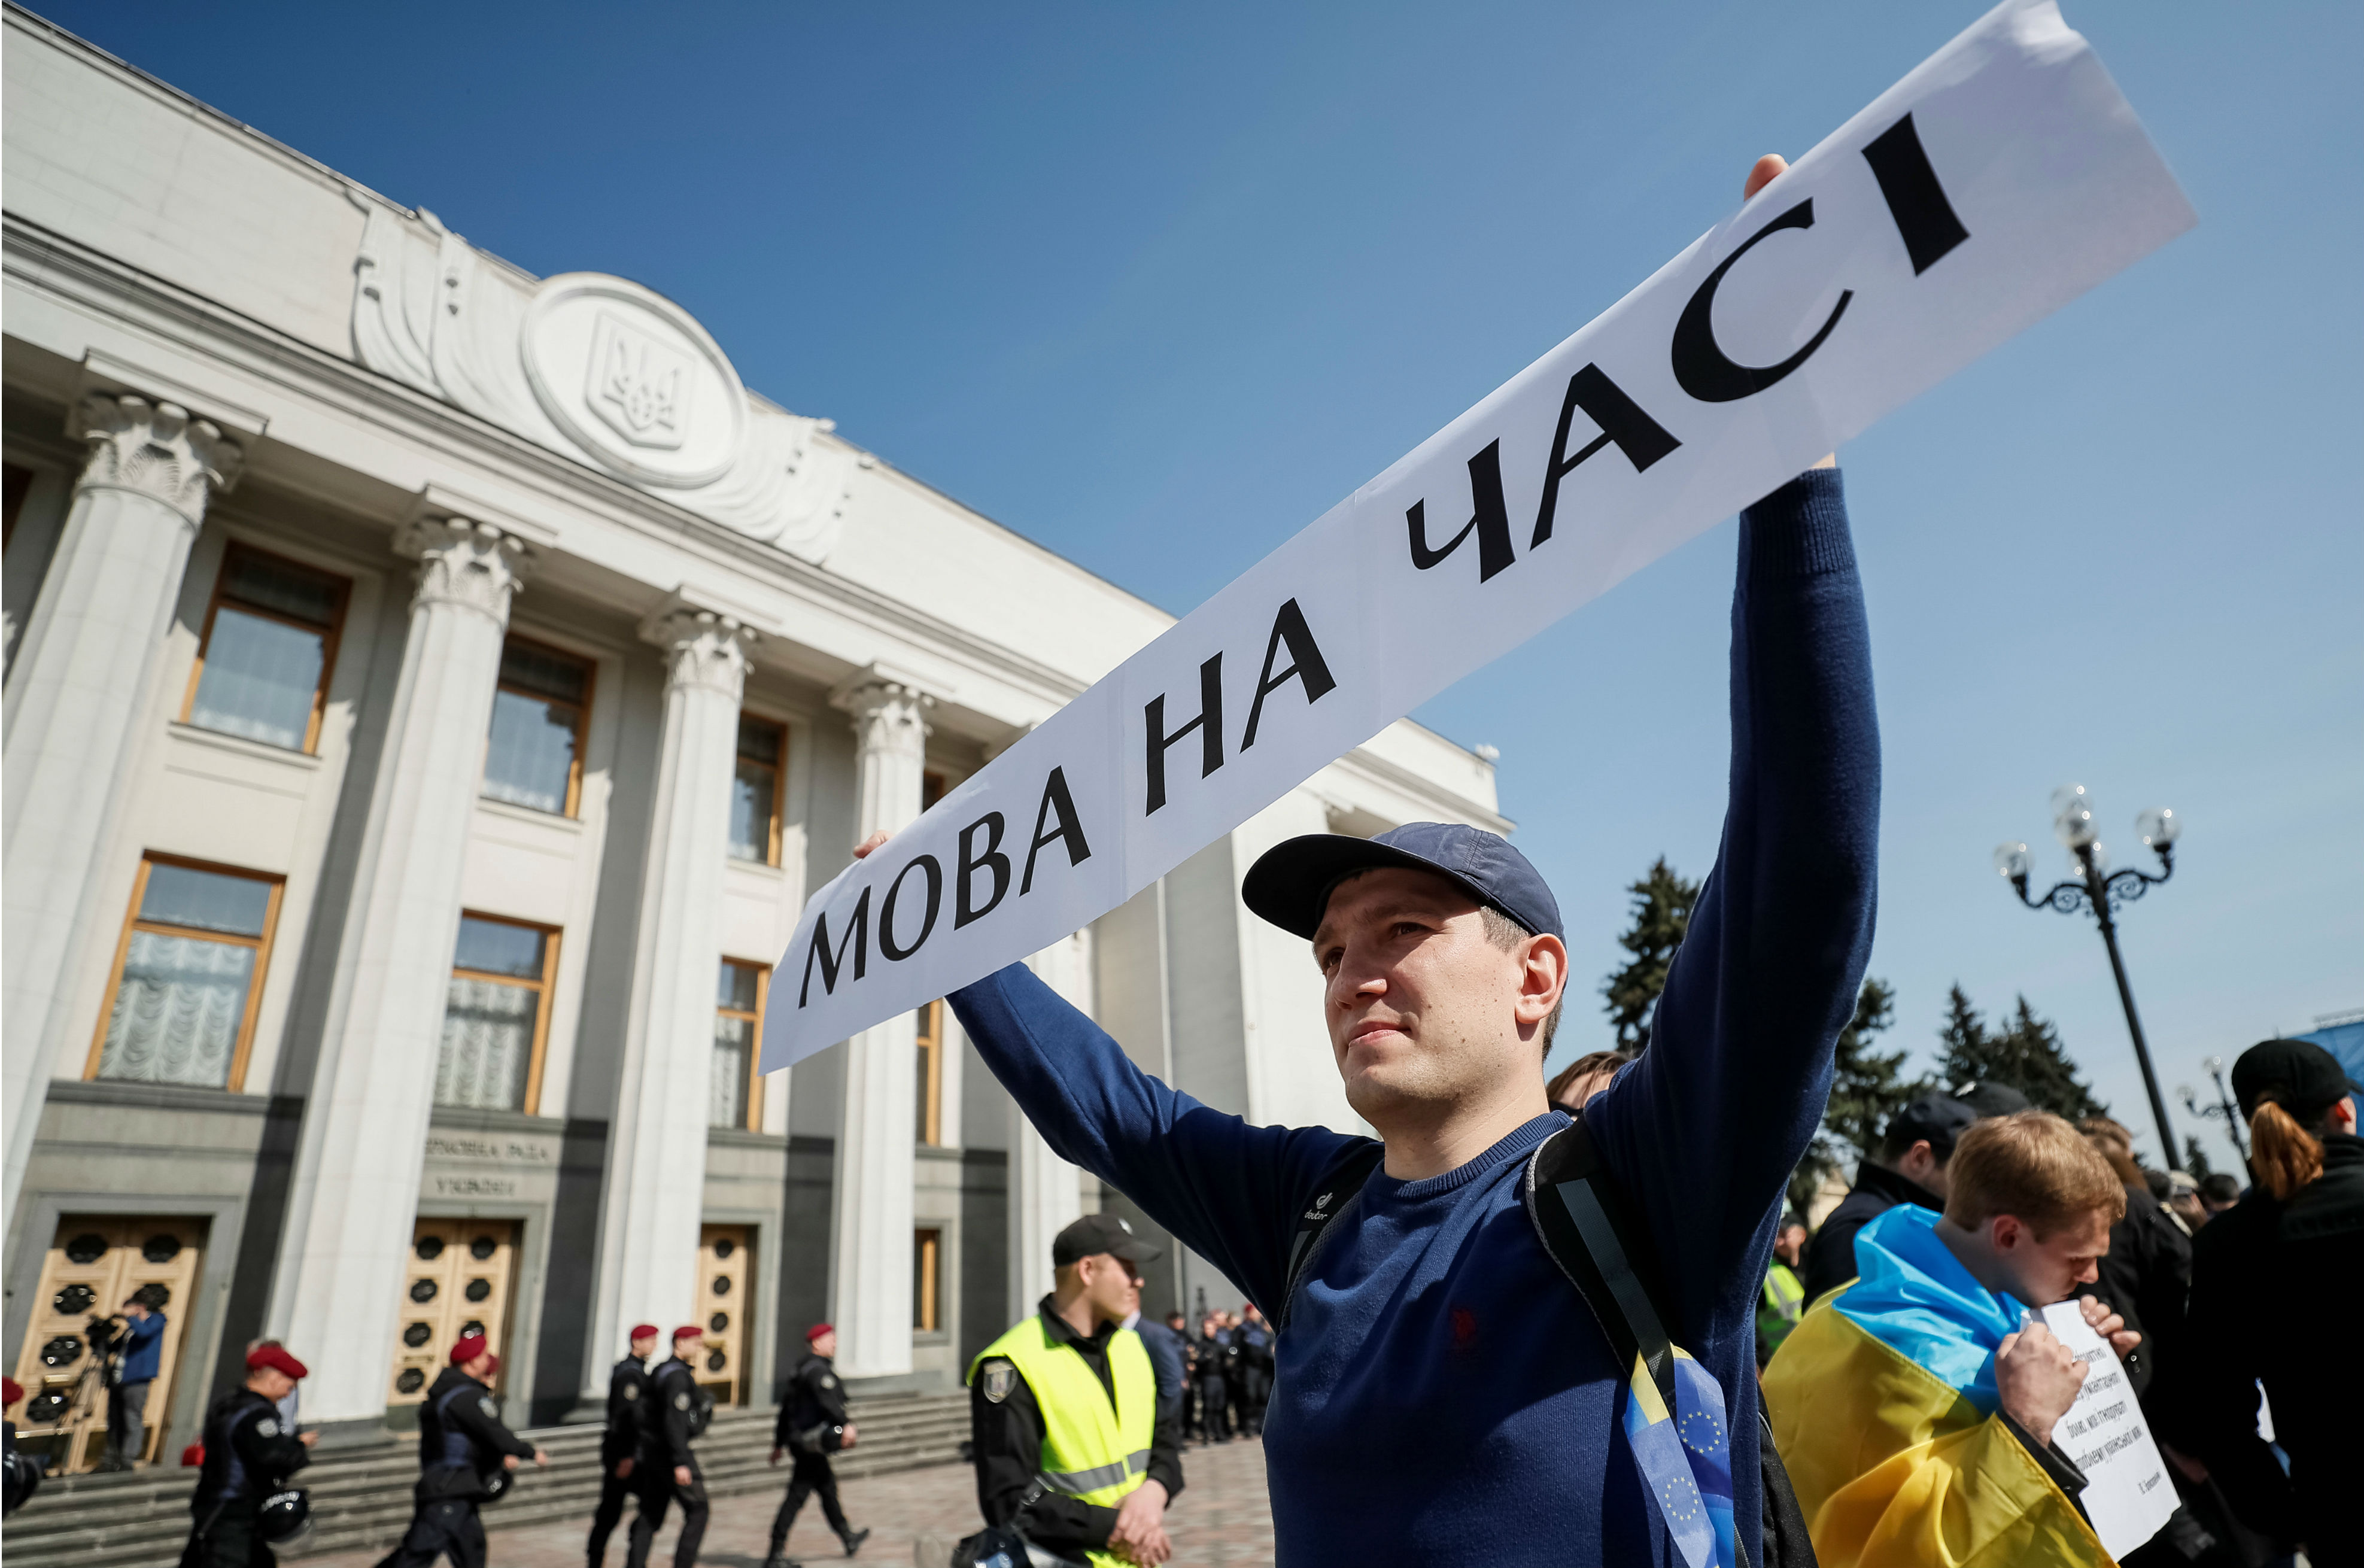 Ukraine's new language law rights historic wrongs